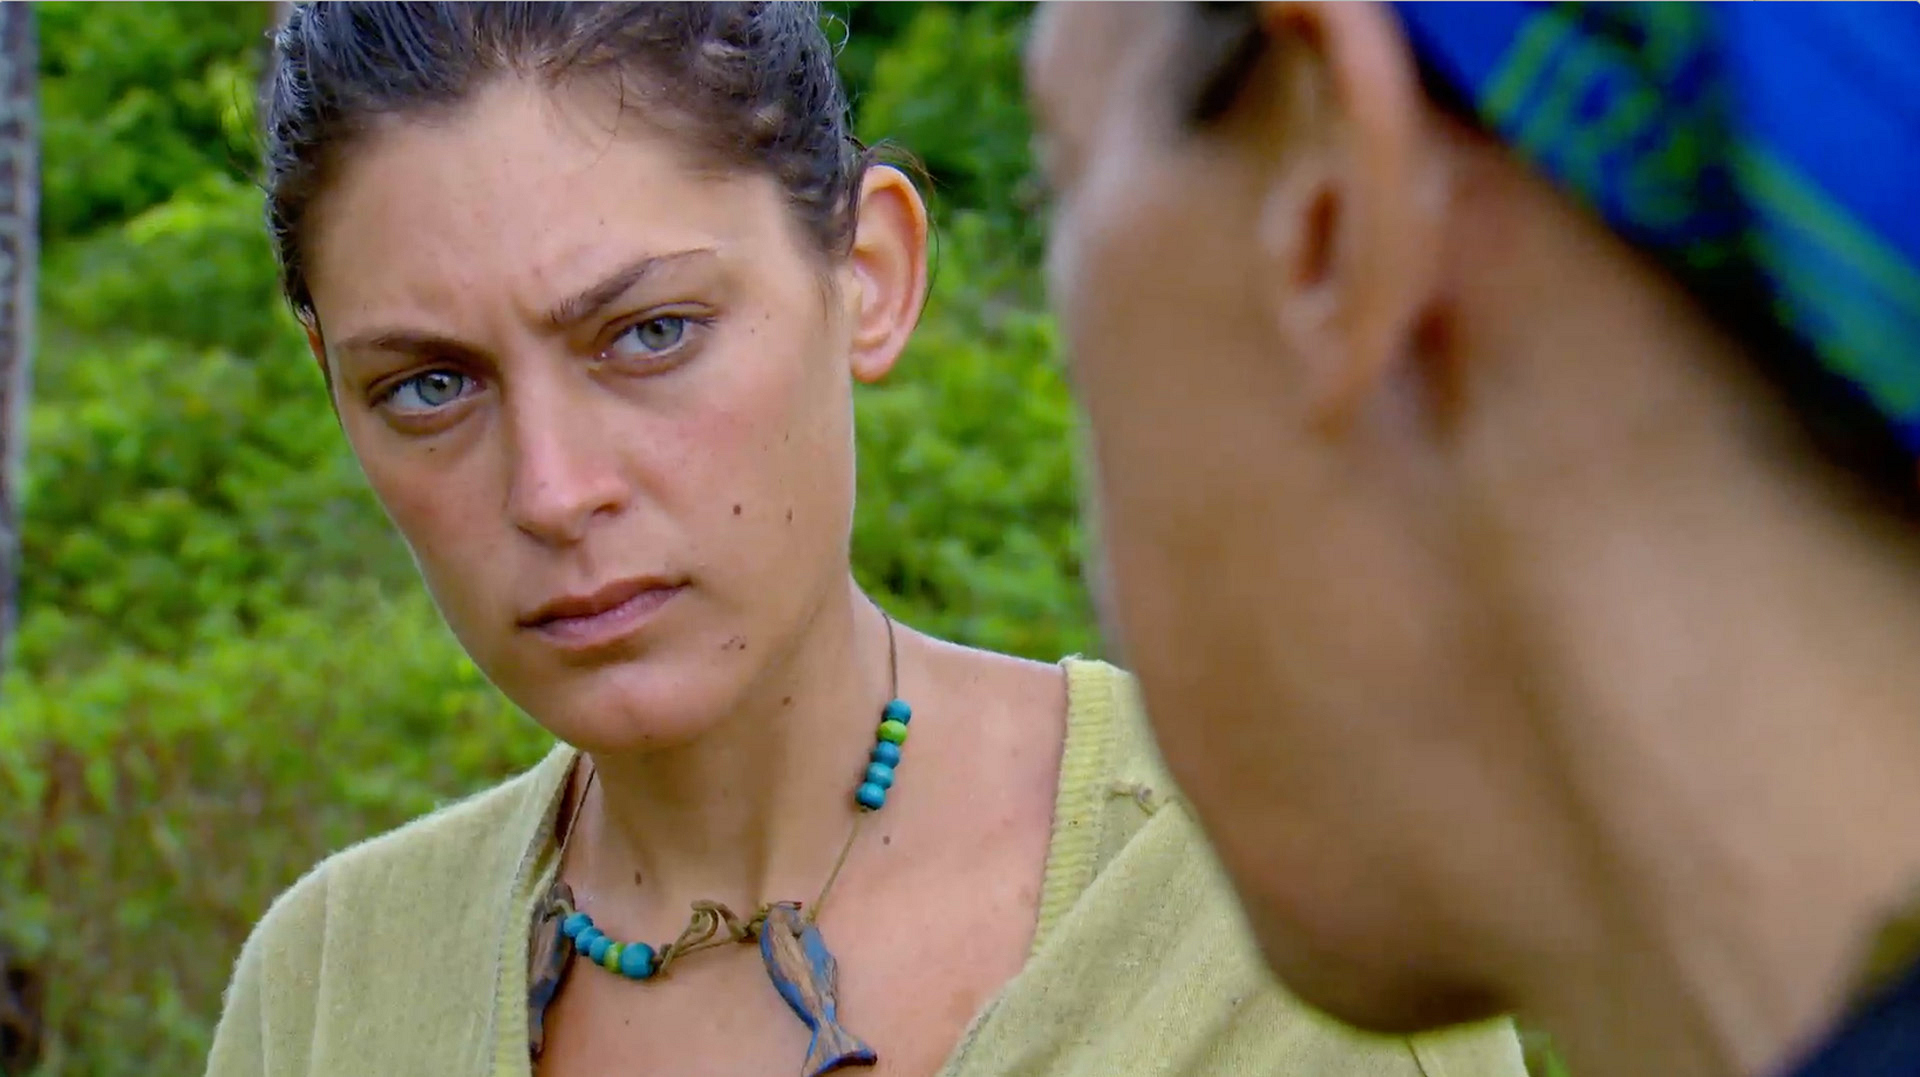 4. Michele blames herself for her tribe's loss.